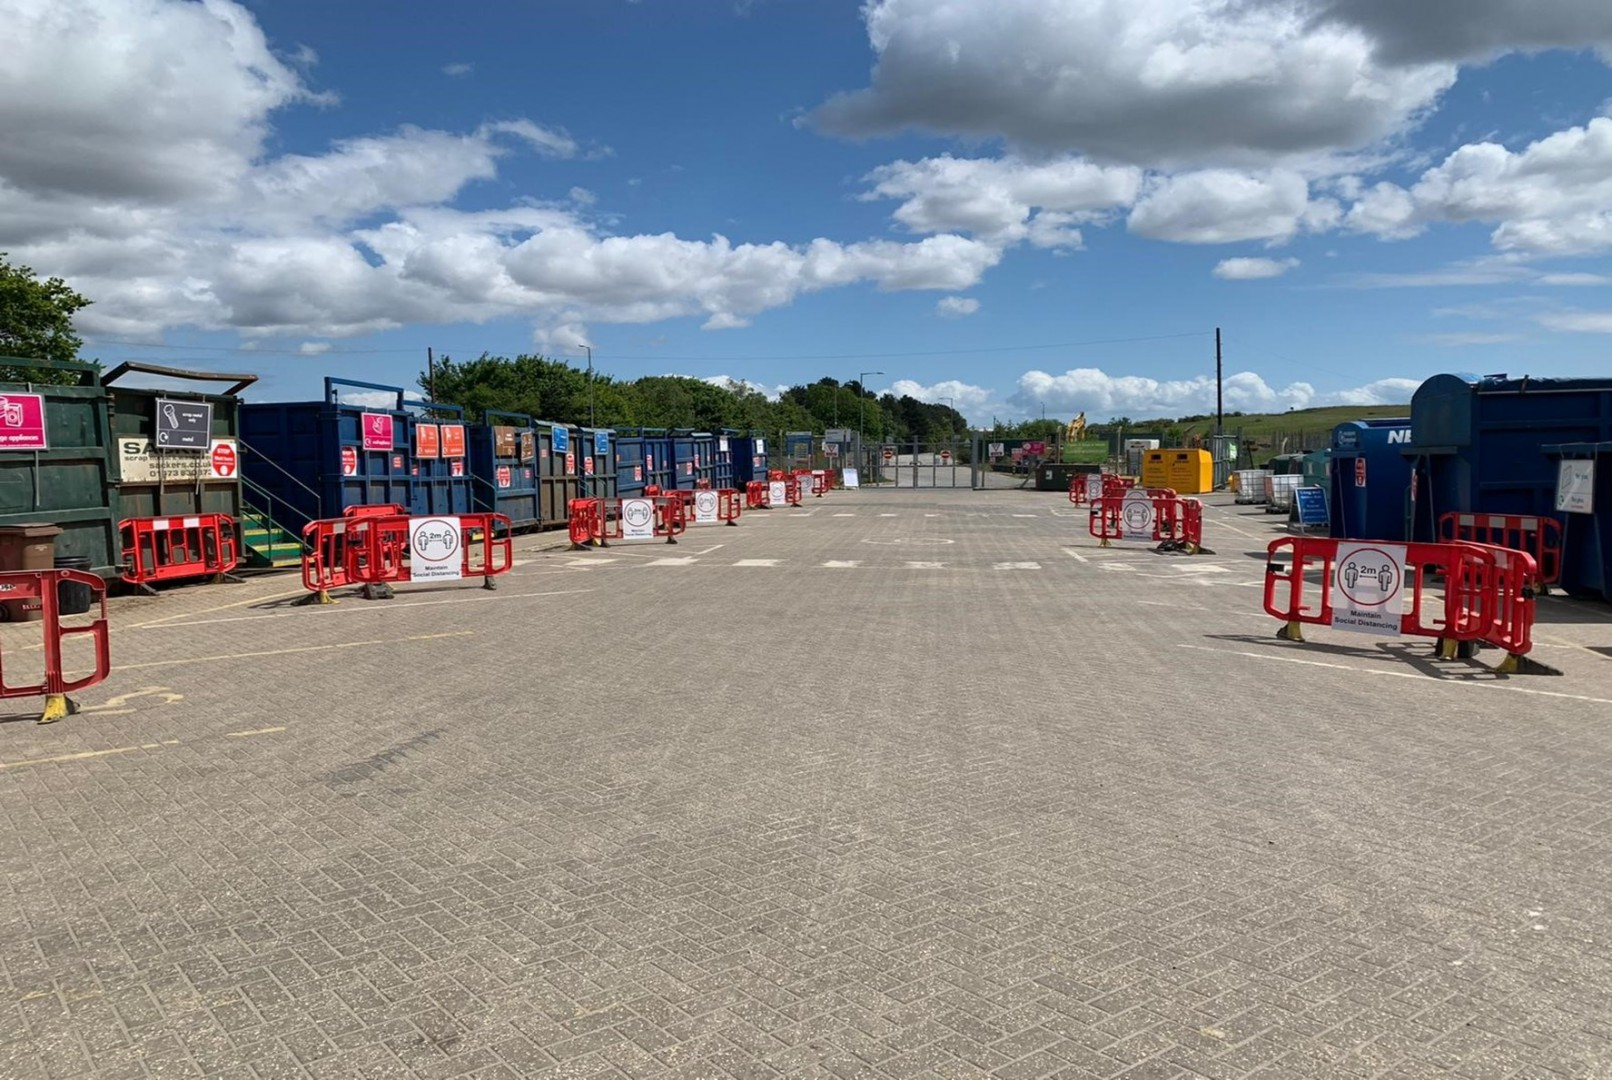 Foxhall Recycling Centre with social distancing measures e.g. marked out parking bays